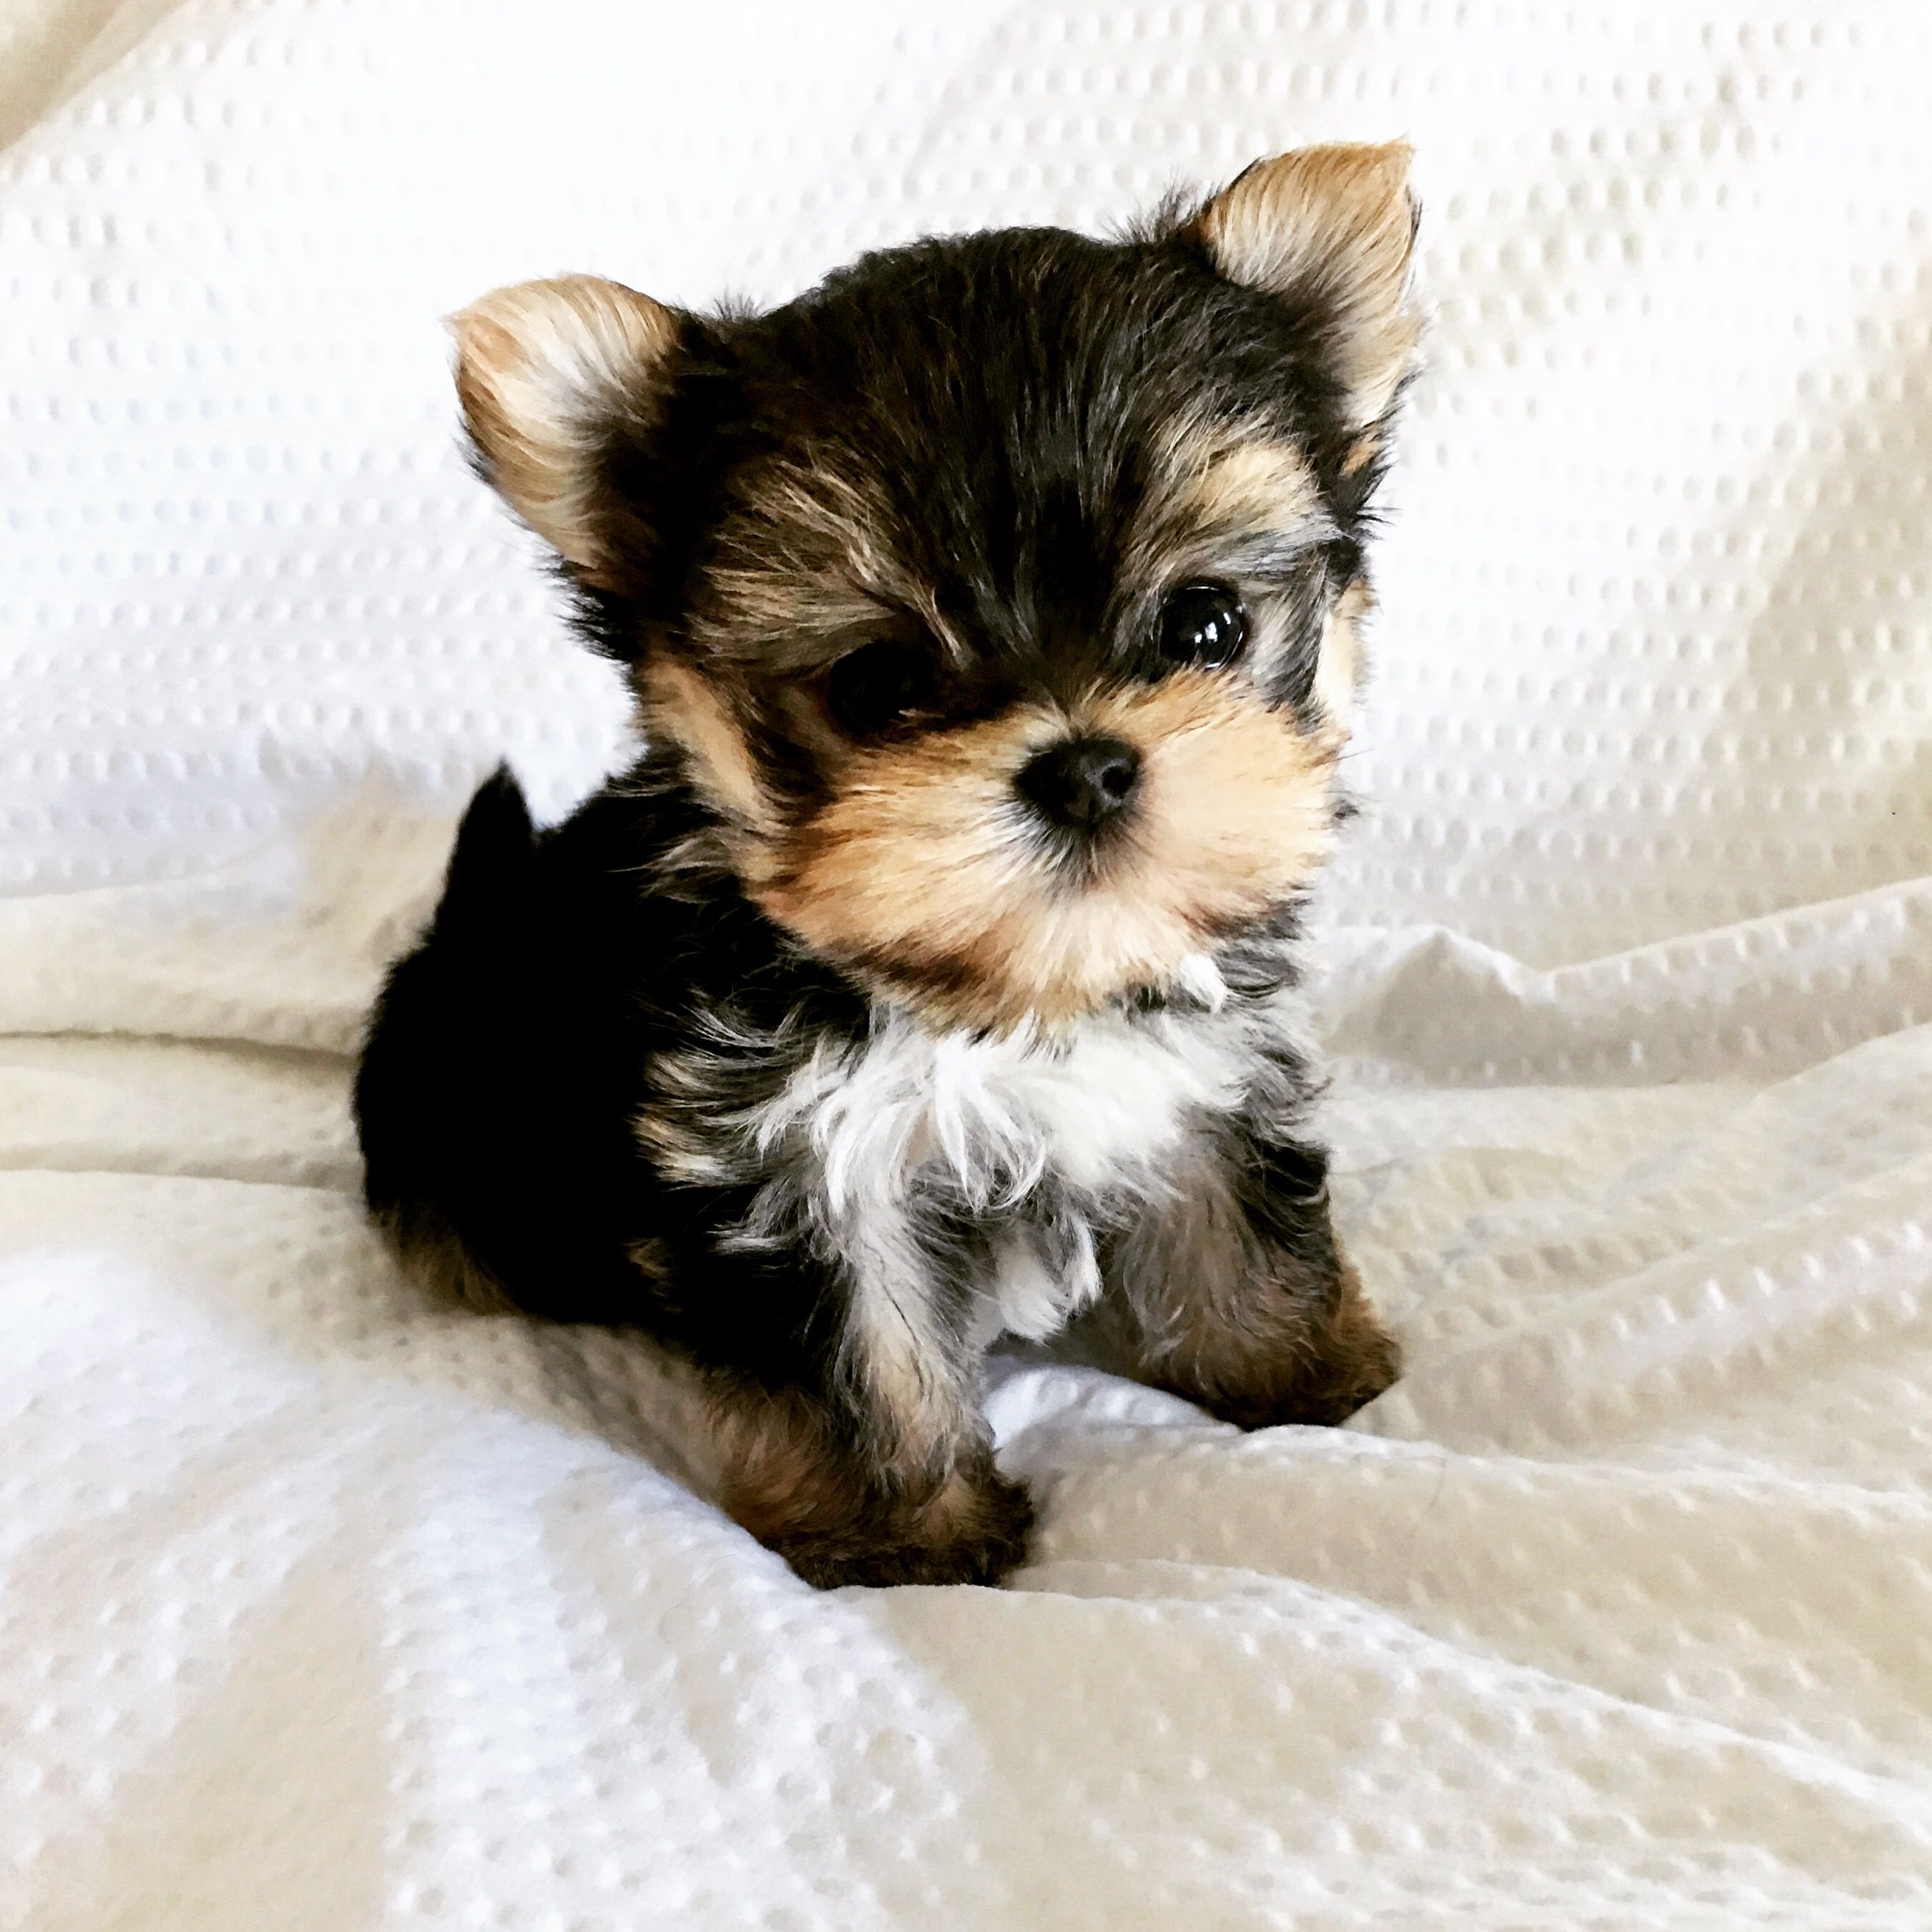 Pin By Virginia On Puppies Yorkie Puppy Teacup Yorkie Puppy Yorkie Puppy For Sale